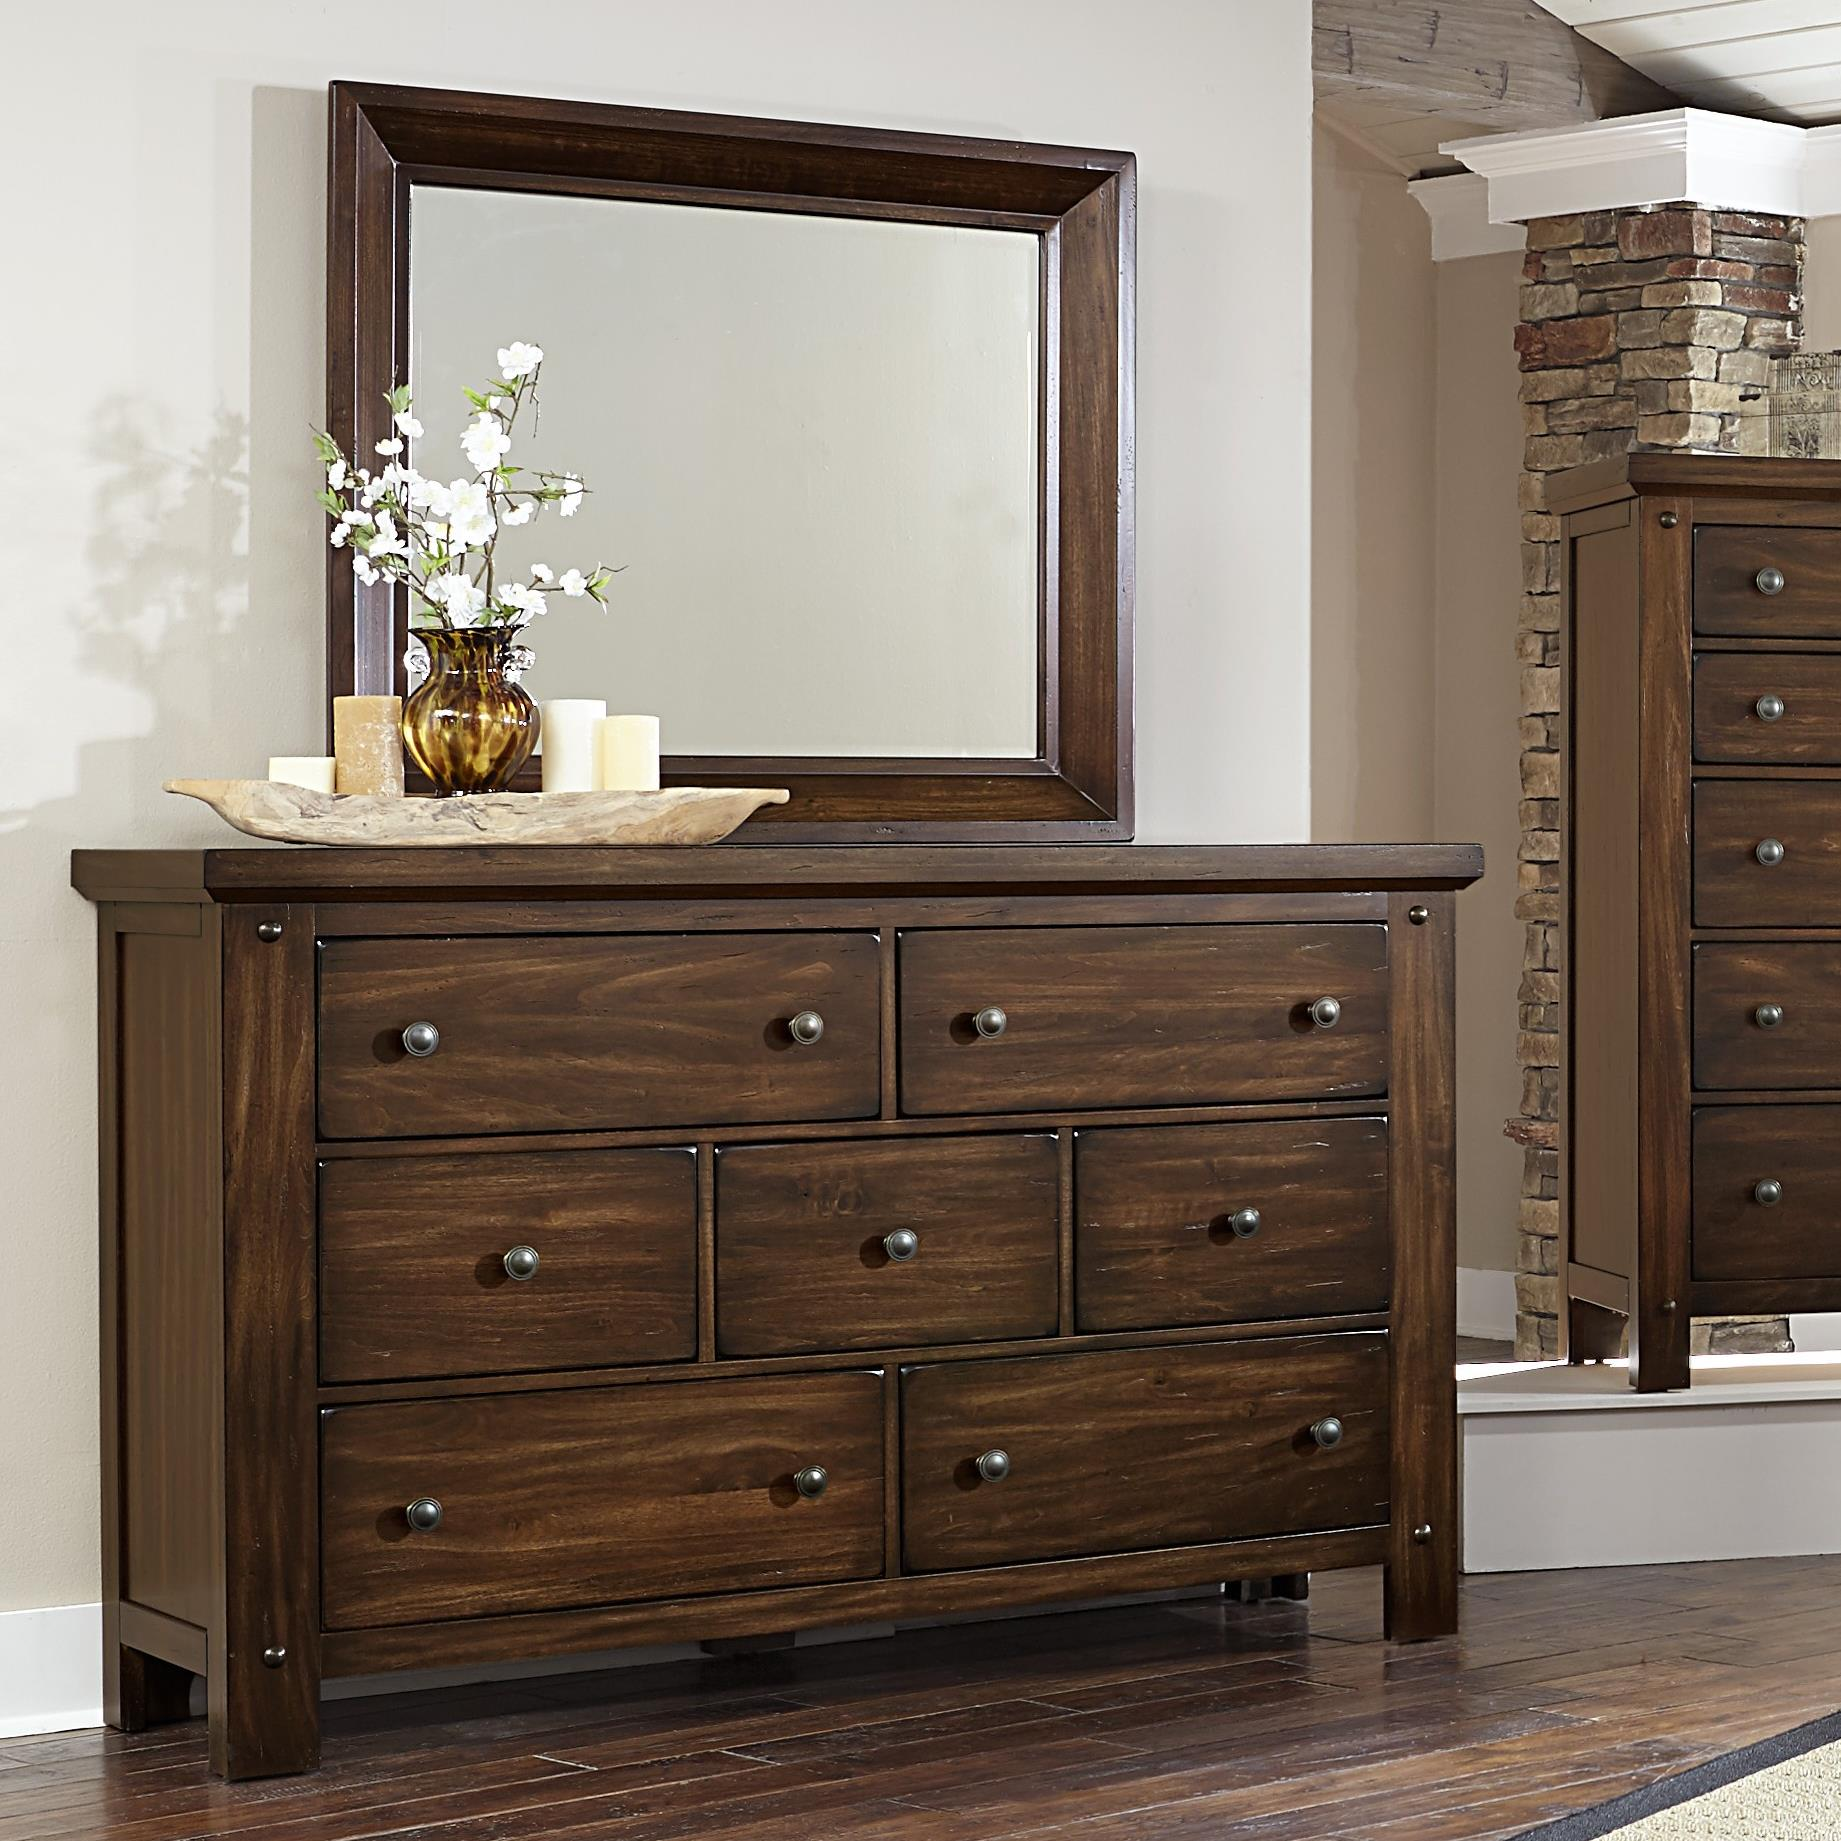 Vaughan Bassett Collaboration Dresser & Mirror - Item Number: 612-002+446